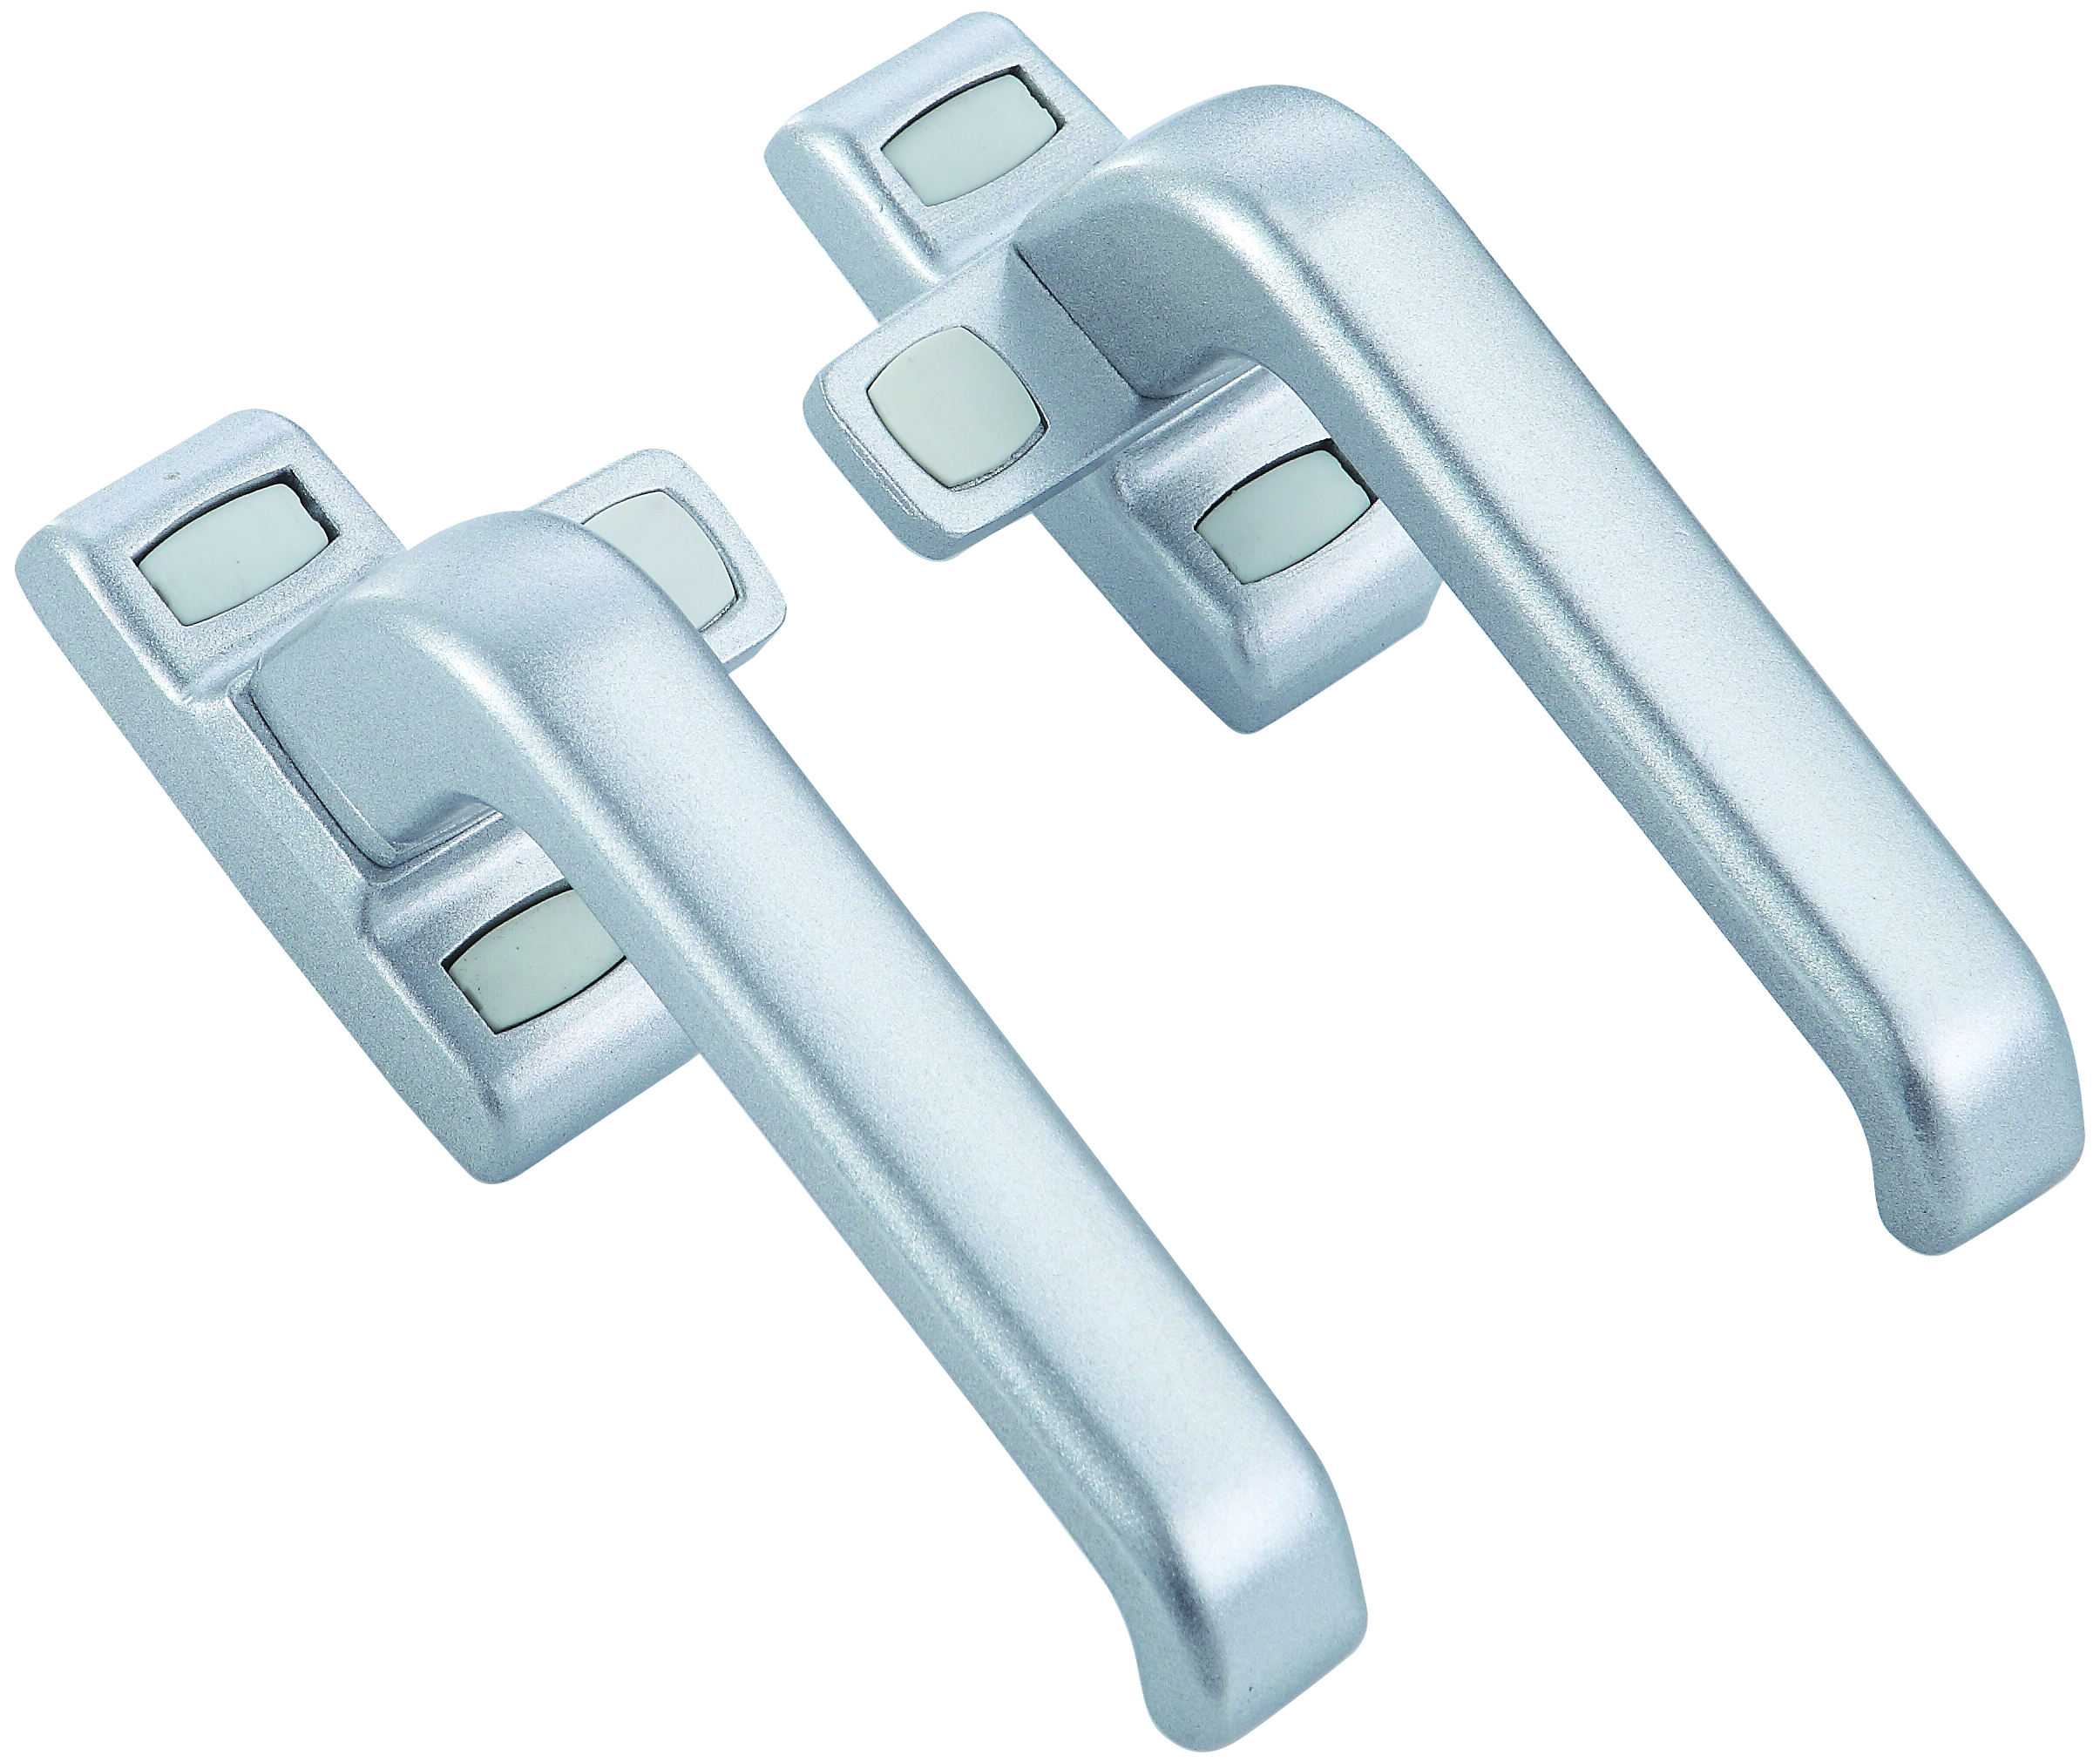 window accessories handle aluminium ouroom window handle with key